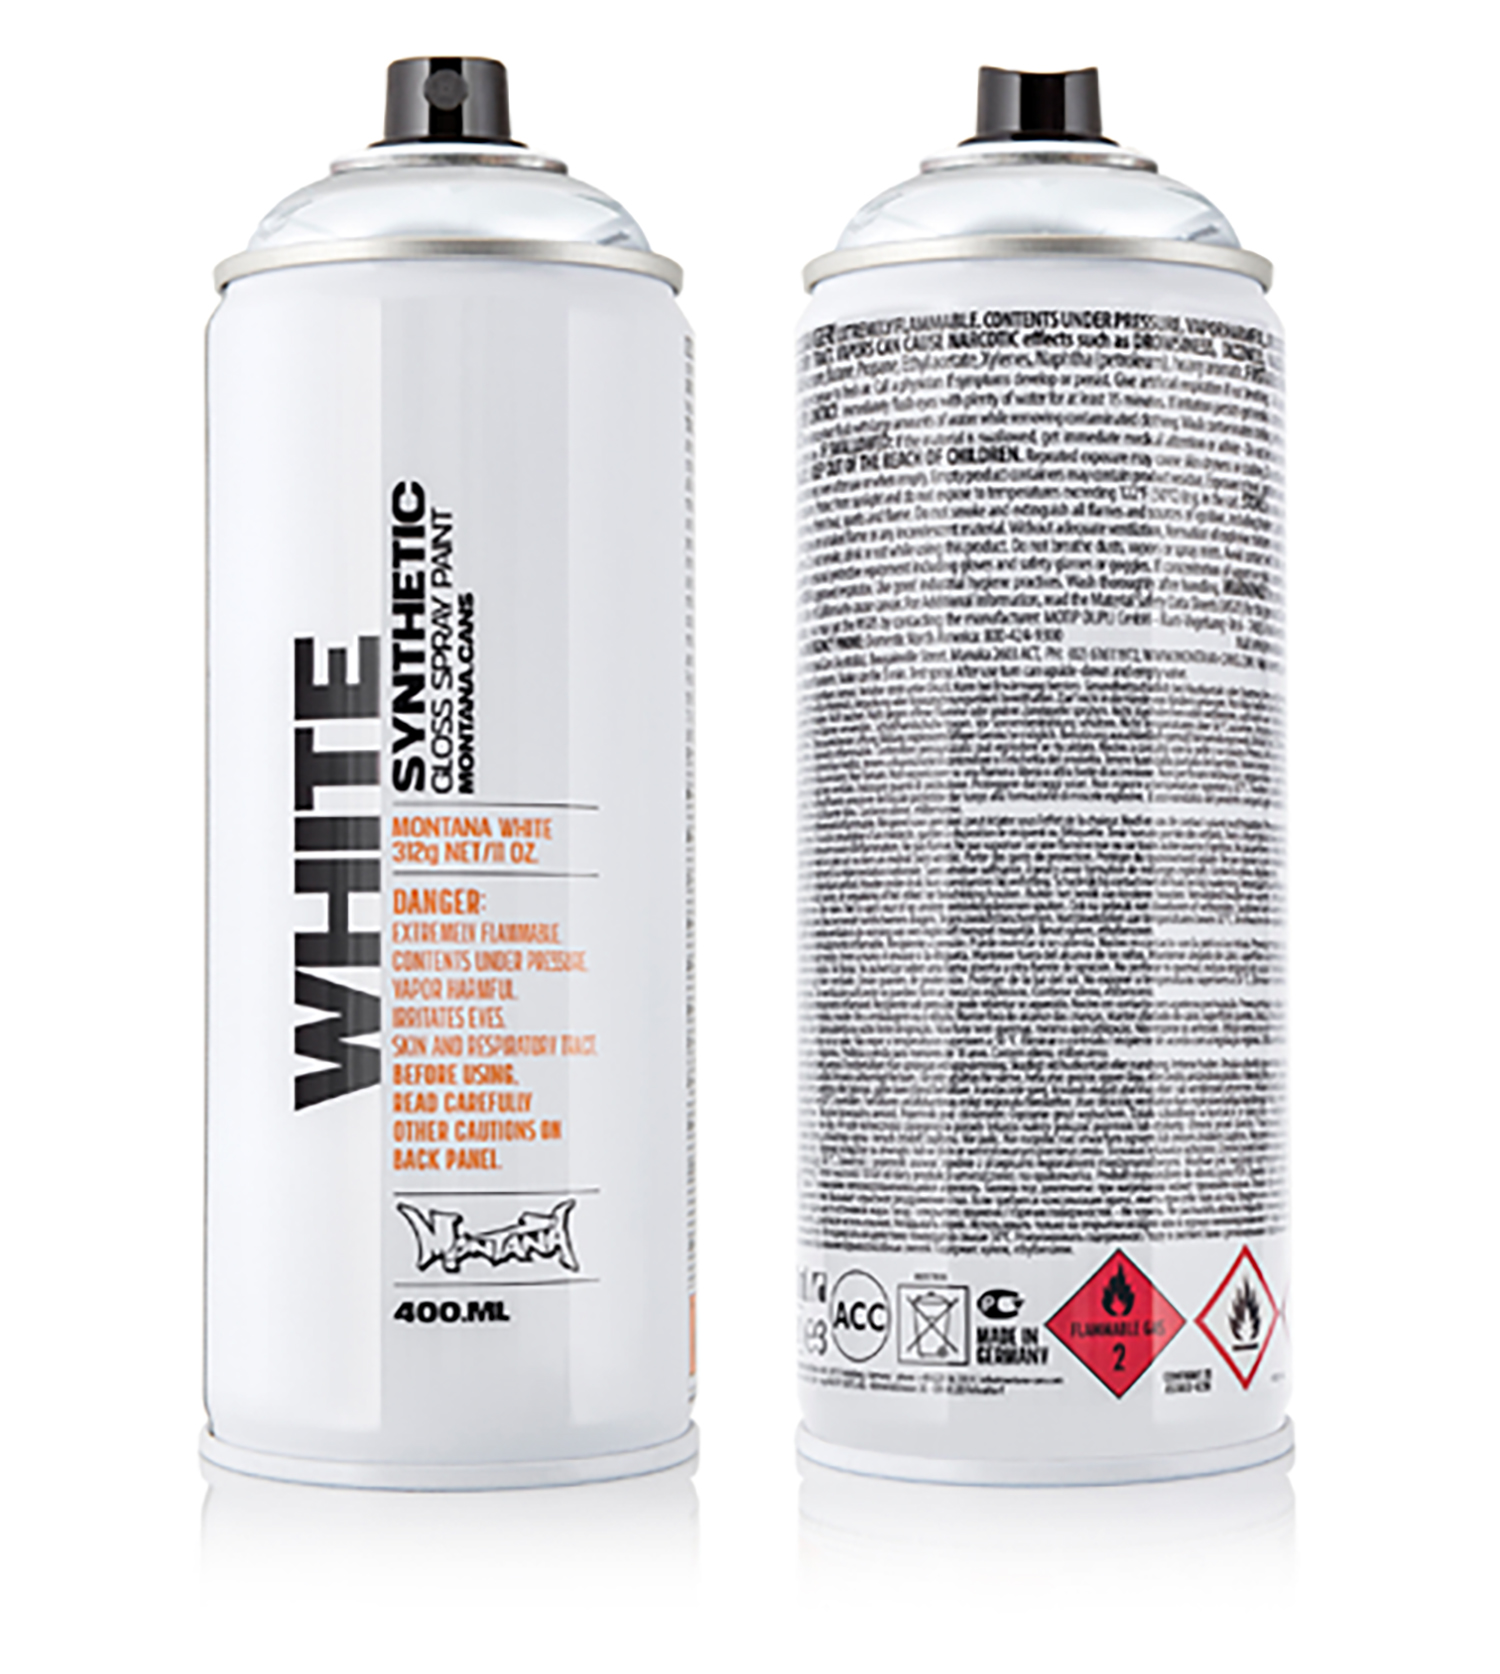 MONTANA-WHITE-SPRAY-400ML-SILVER